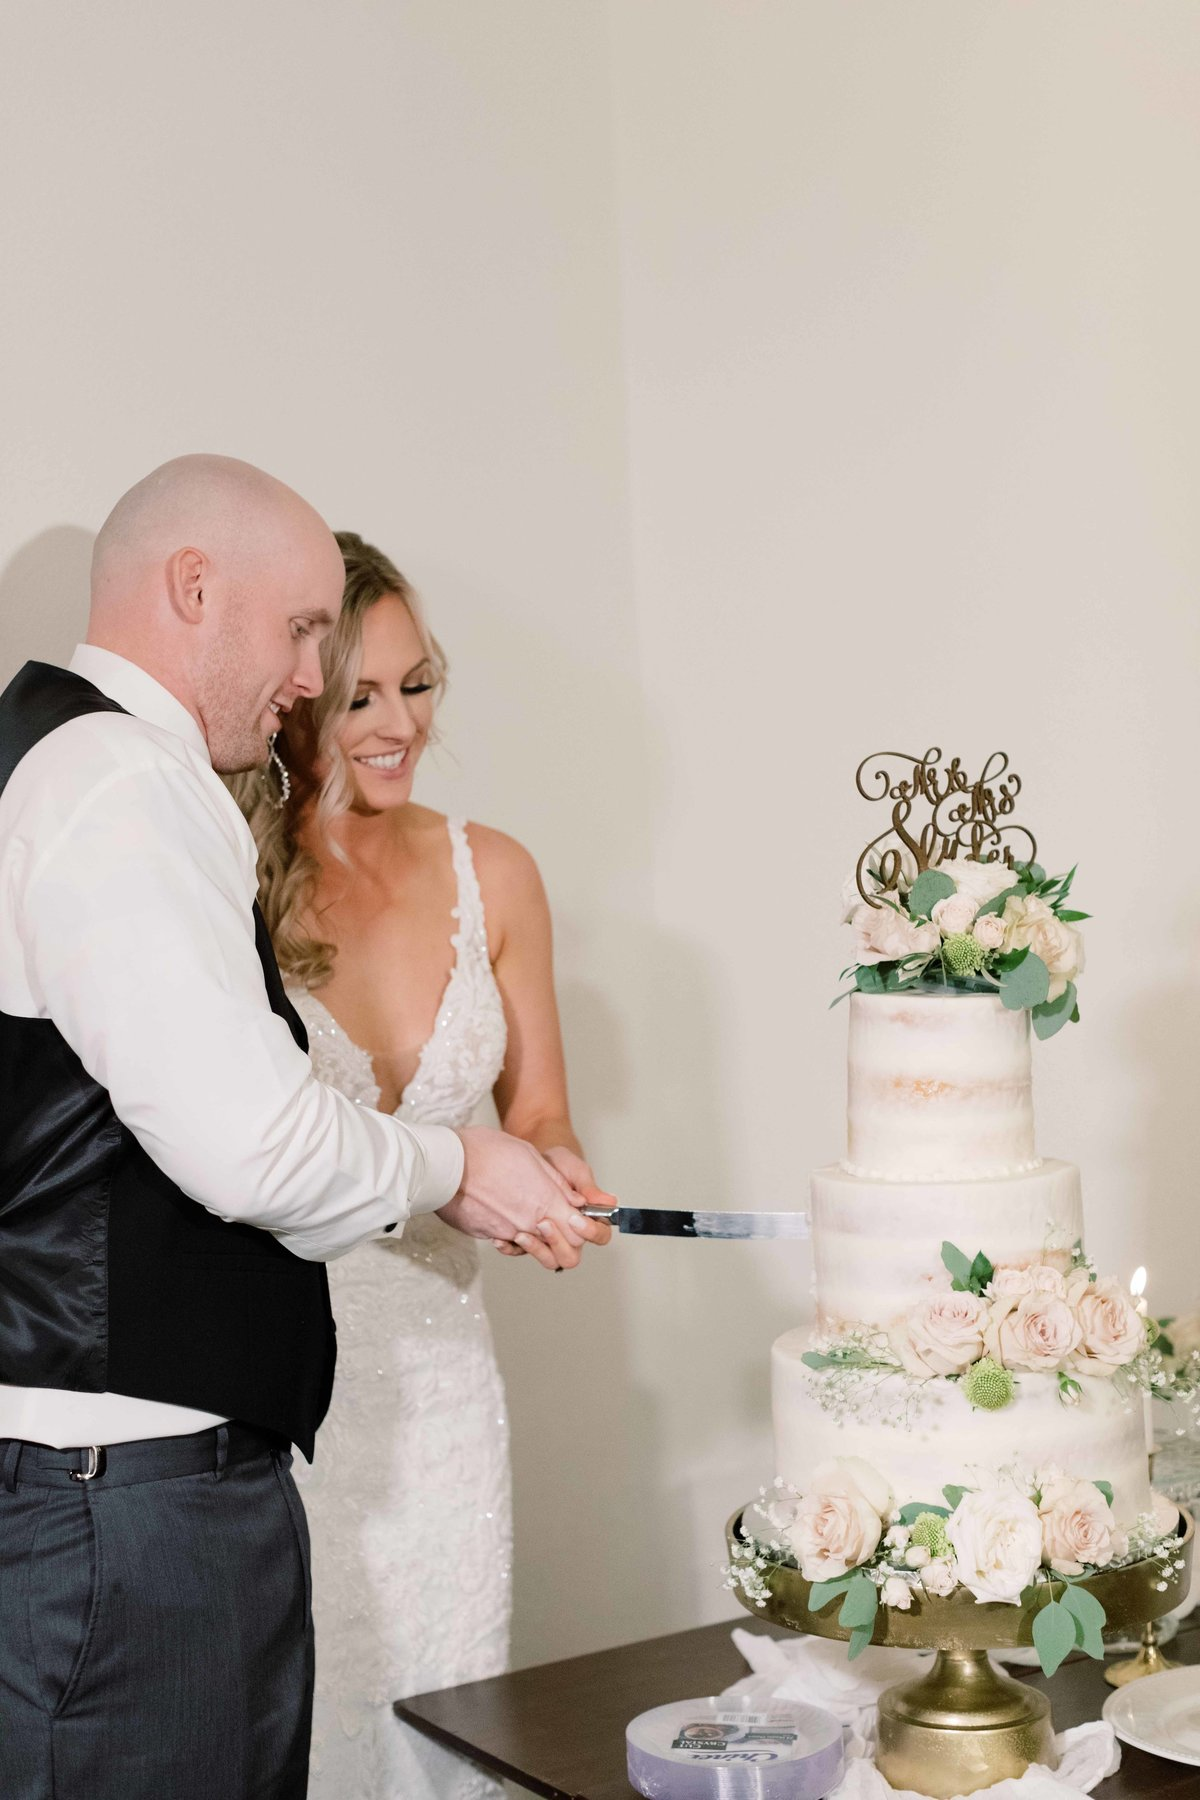 Angel_owens_photography_wedding114